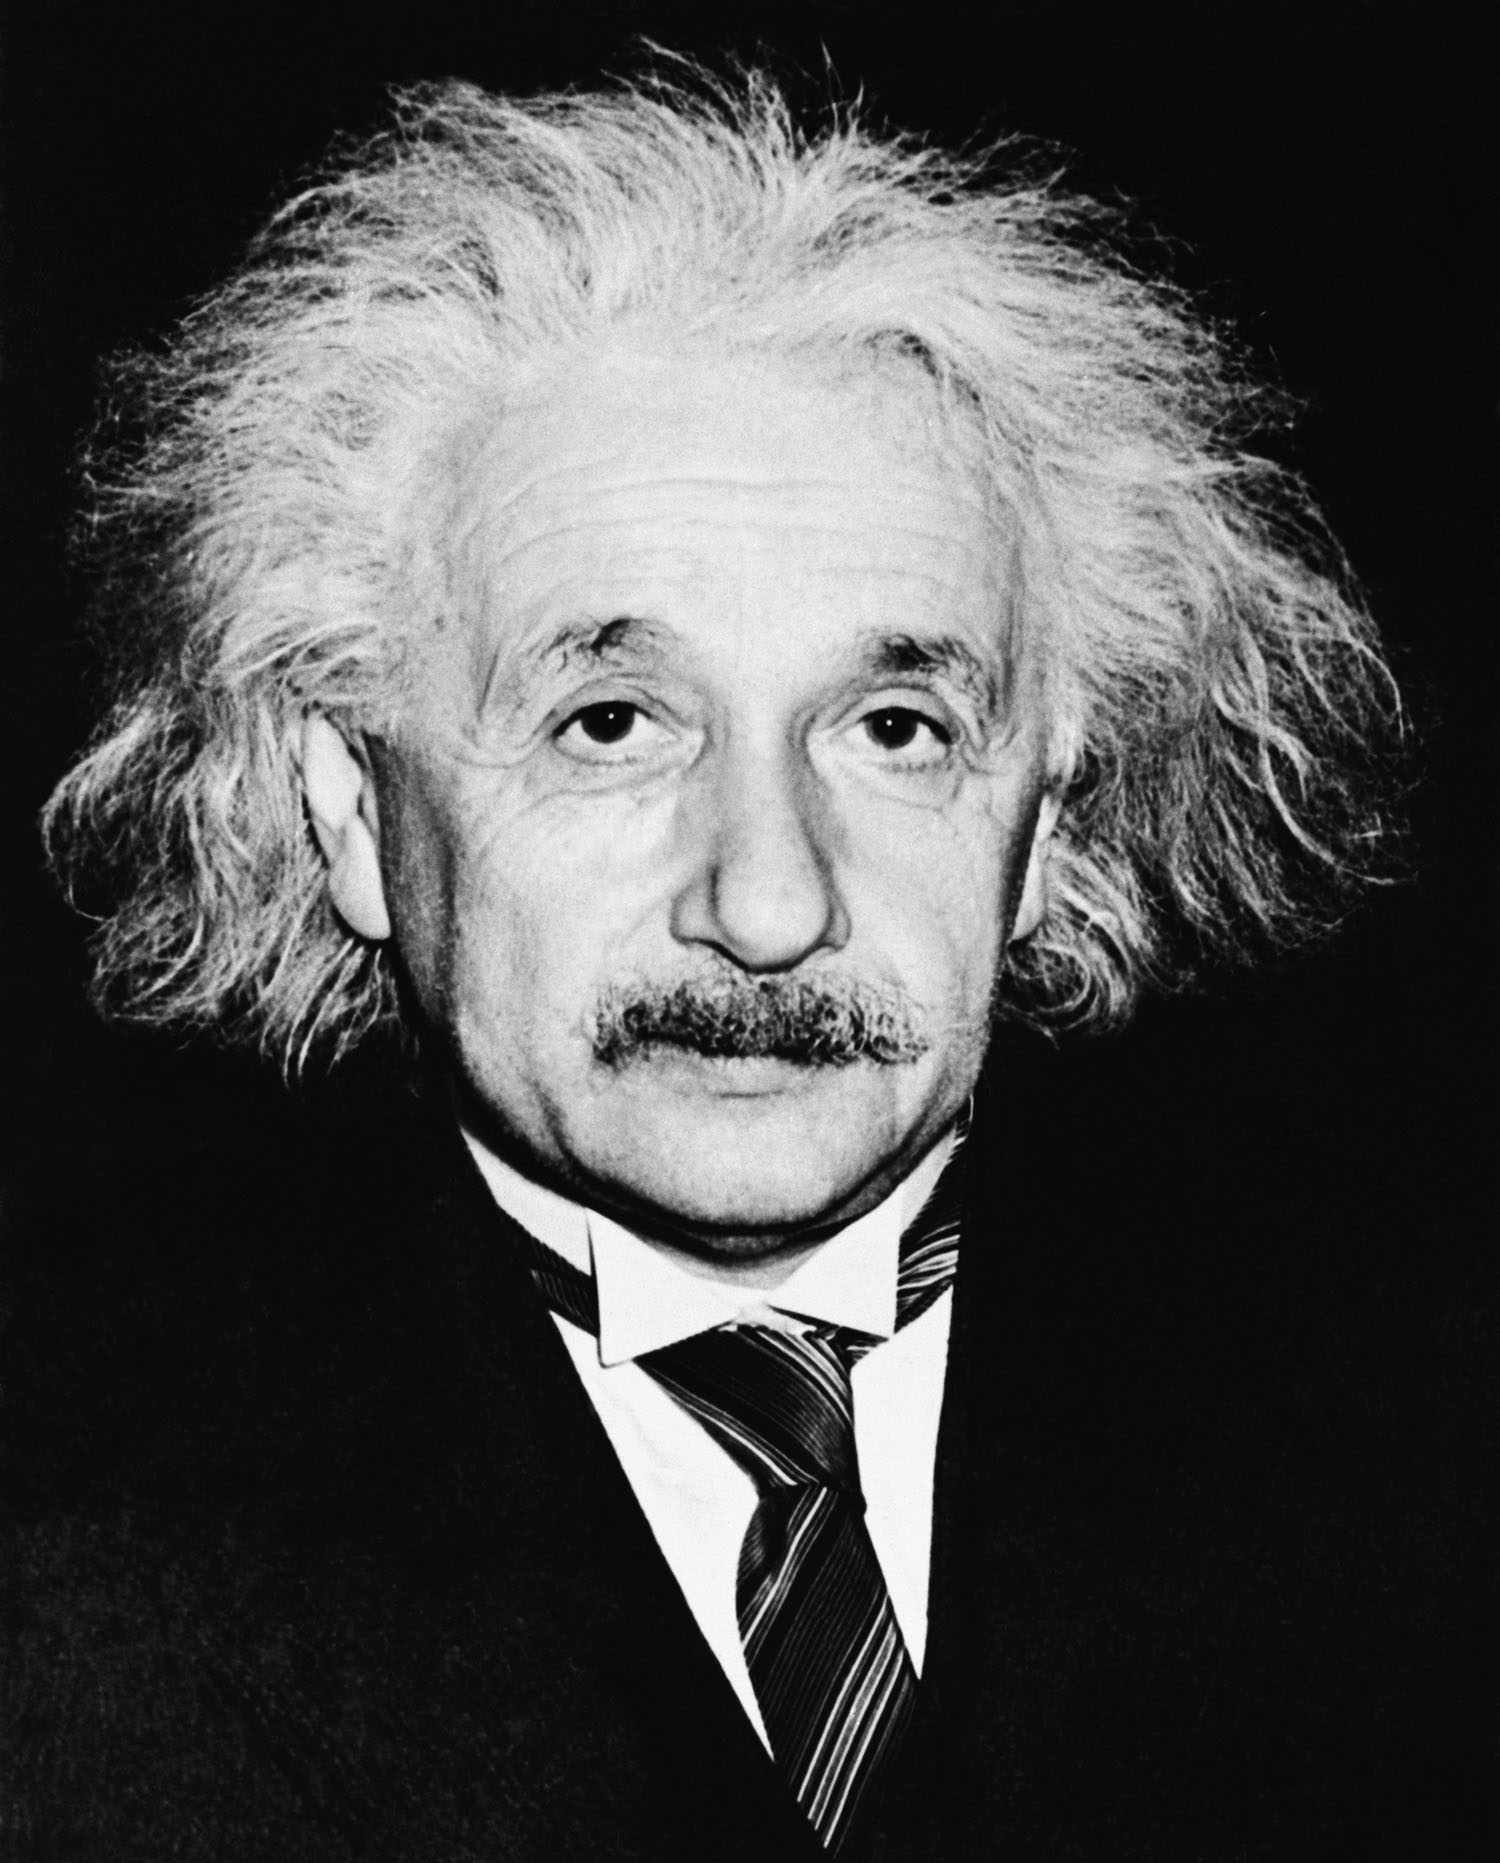 a biography of albert einstein the german american physicist Who was albert einstein albert einstein was a german-born theoretical physicist who developed the general theory of relativity, one of the two pillars of modern physics.